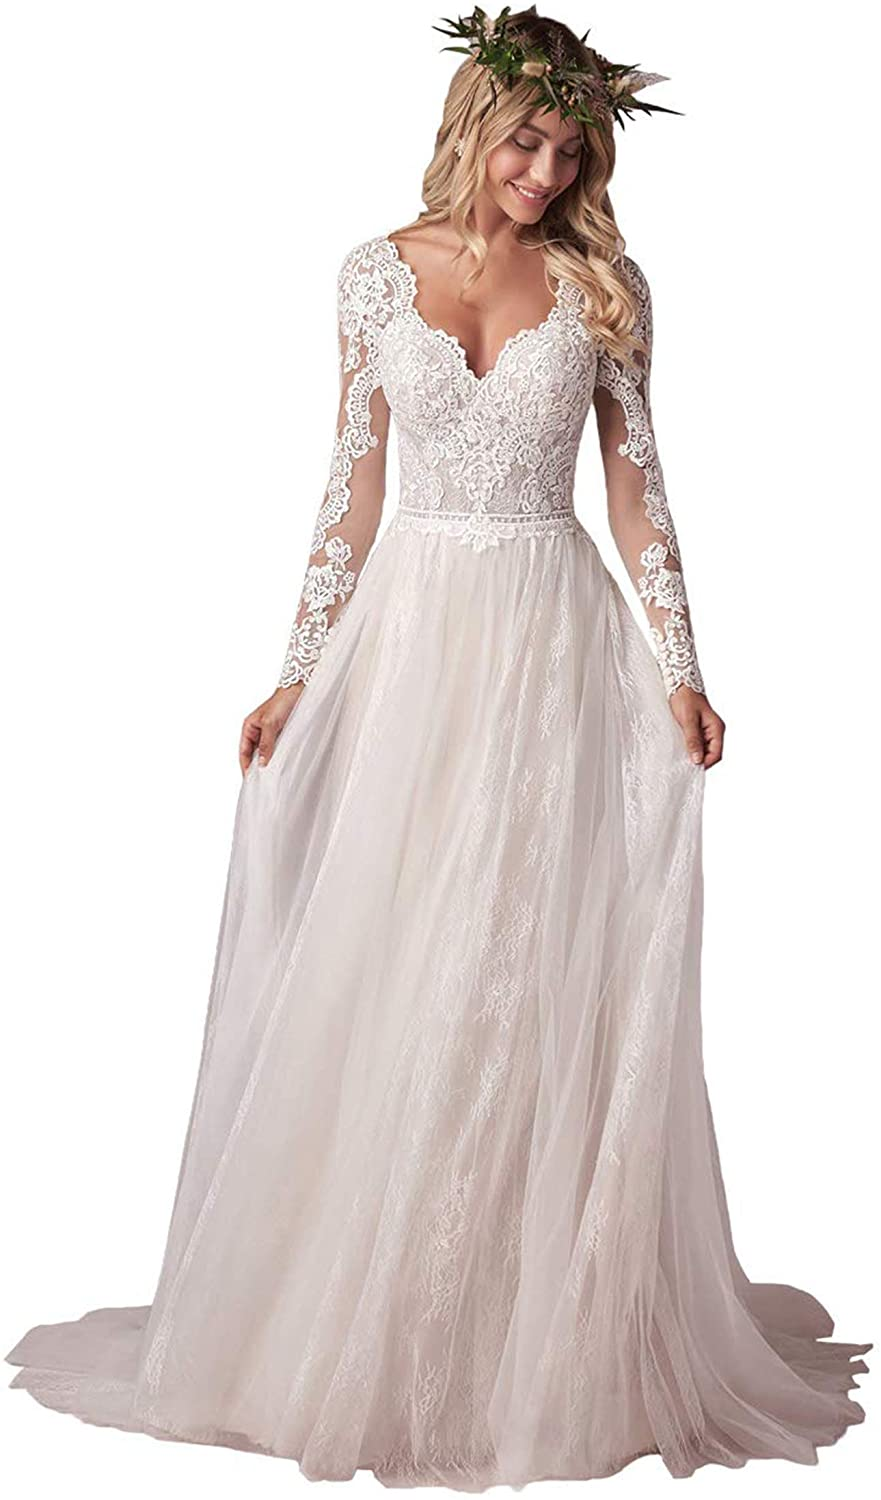 NOVIA Women's Lace Wedding Dresses with 3/4 Illusion Sleeves Bridal Gowns